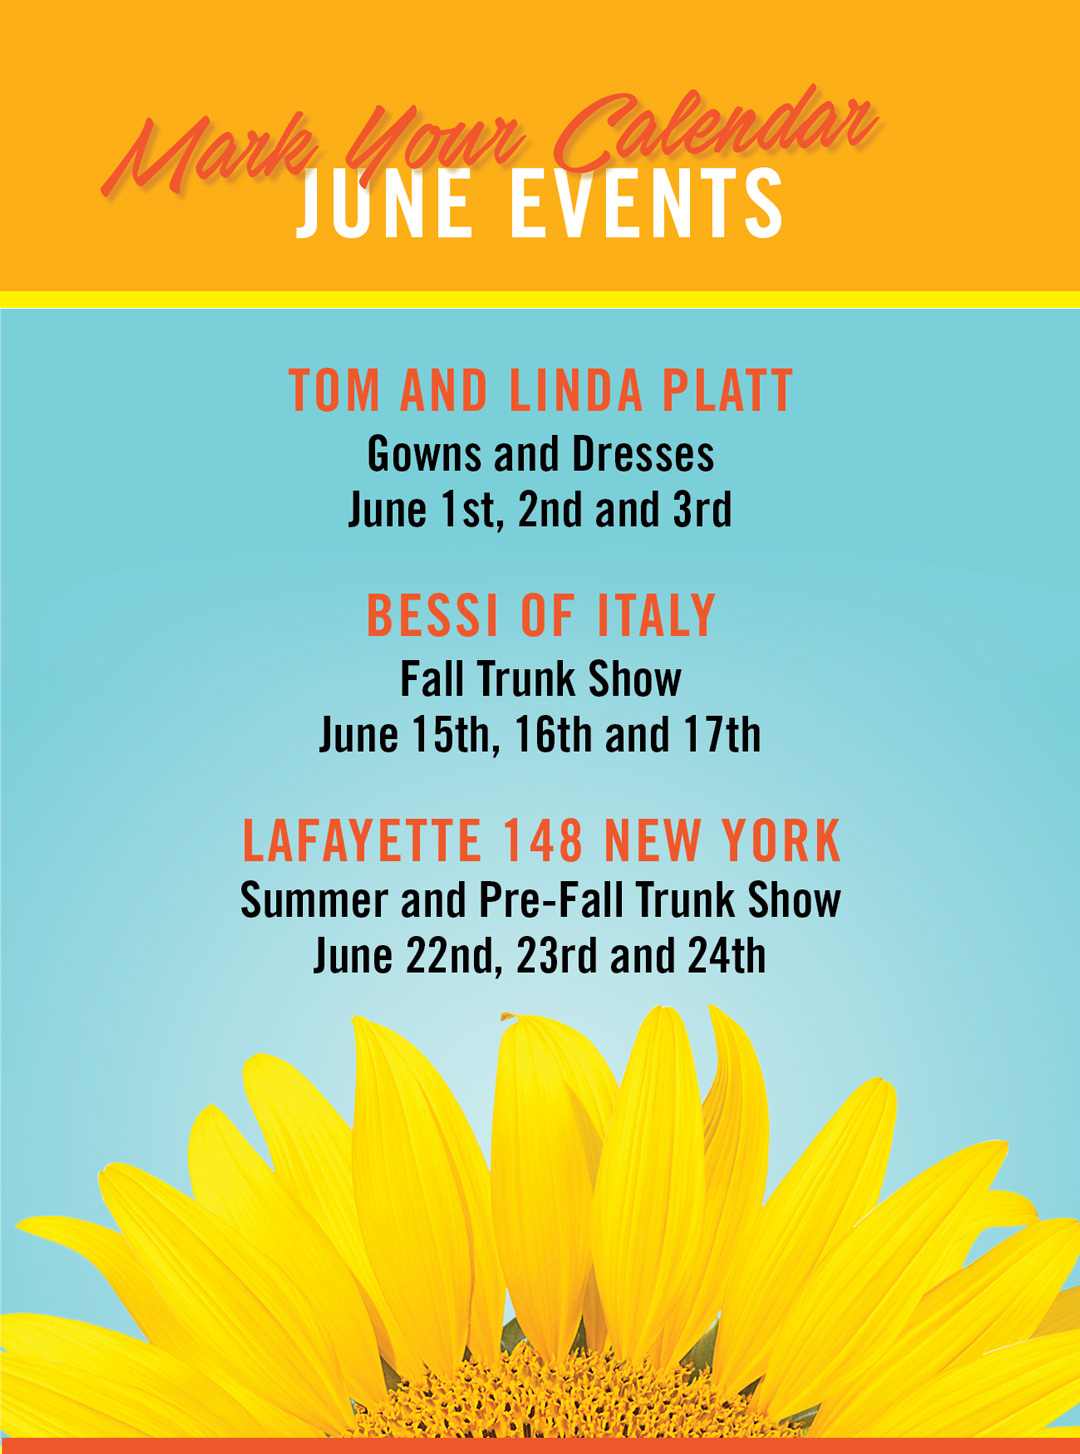 Mark Your Calendars! June Events